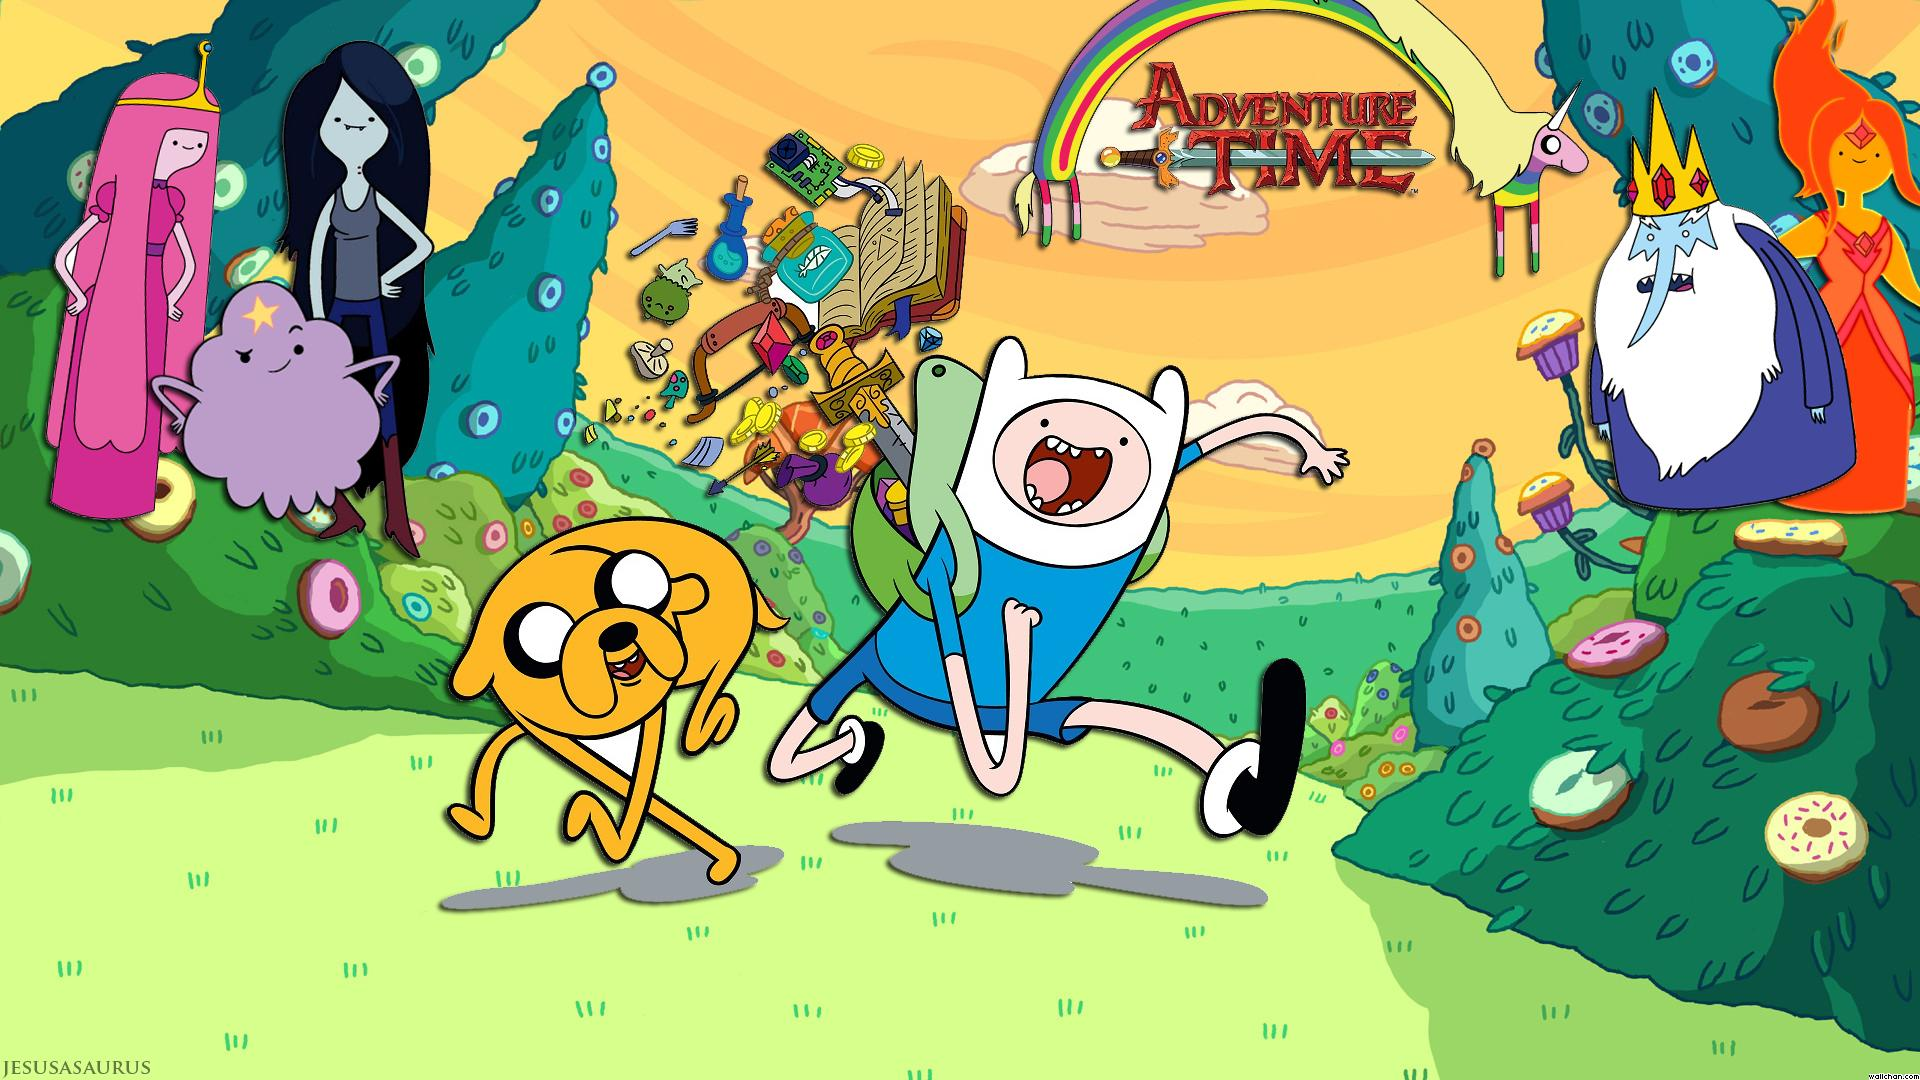 Adventure Time Wallpapers HD - Wallpaper Cave